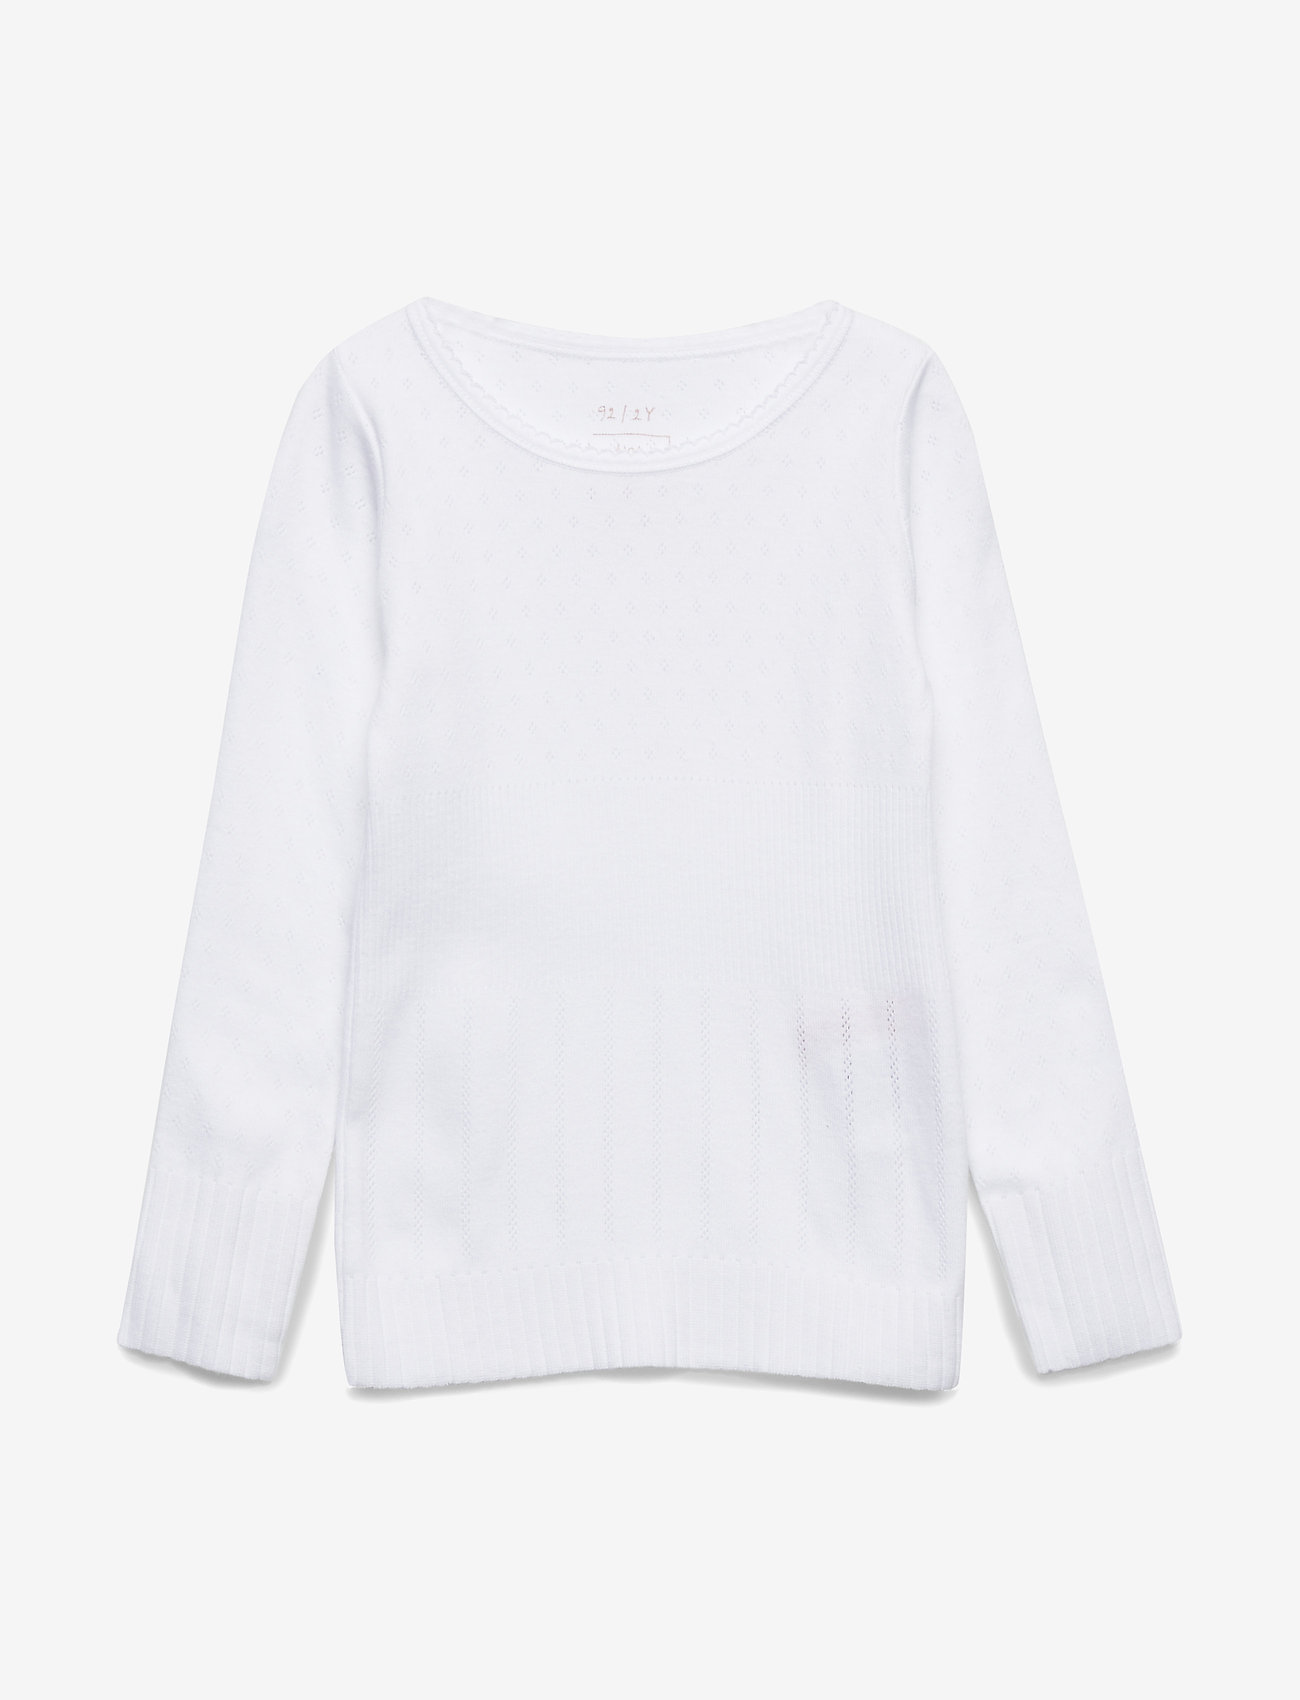 Noa Noa Miniature - T-shirt - long-sleeved t-shirts - white - 0